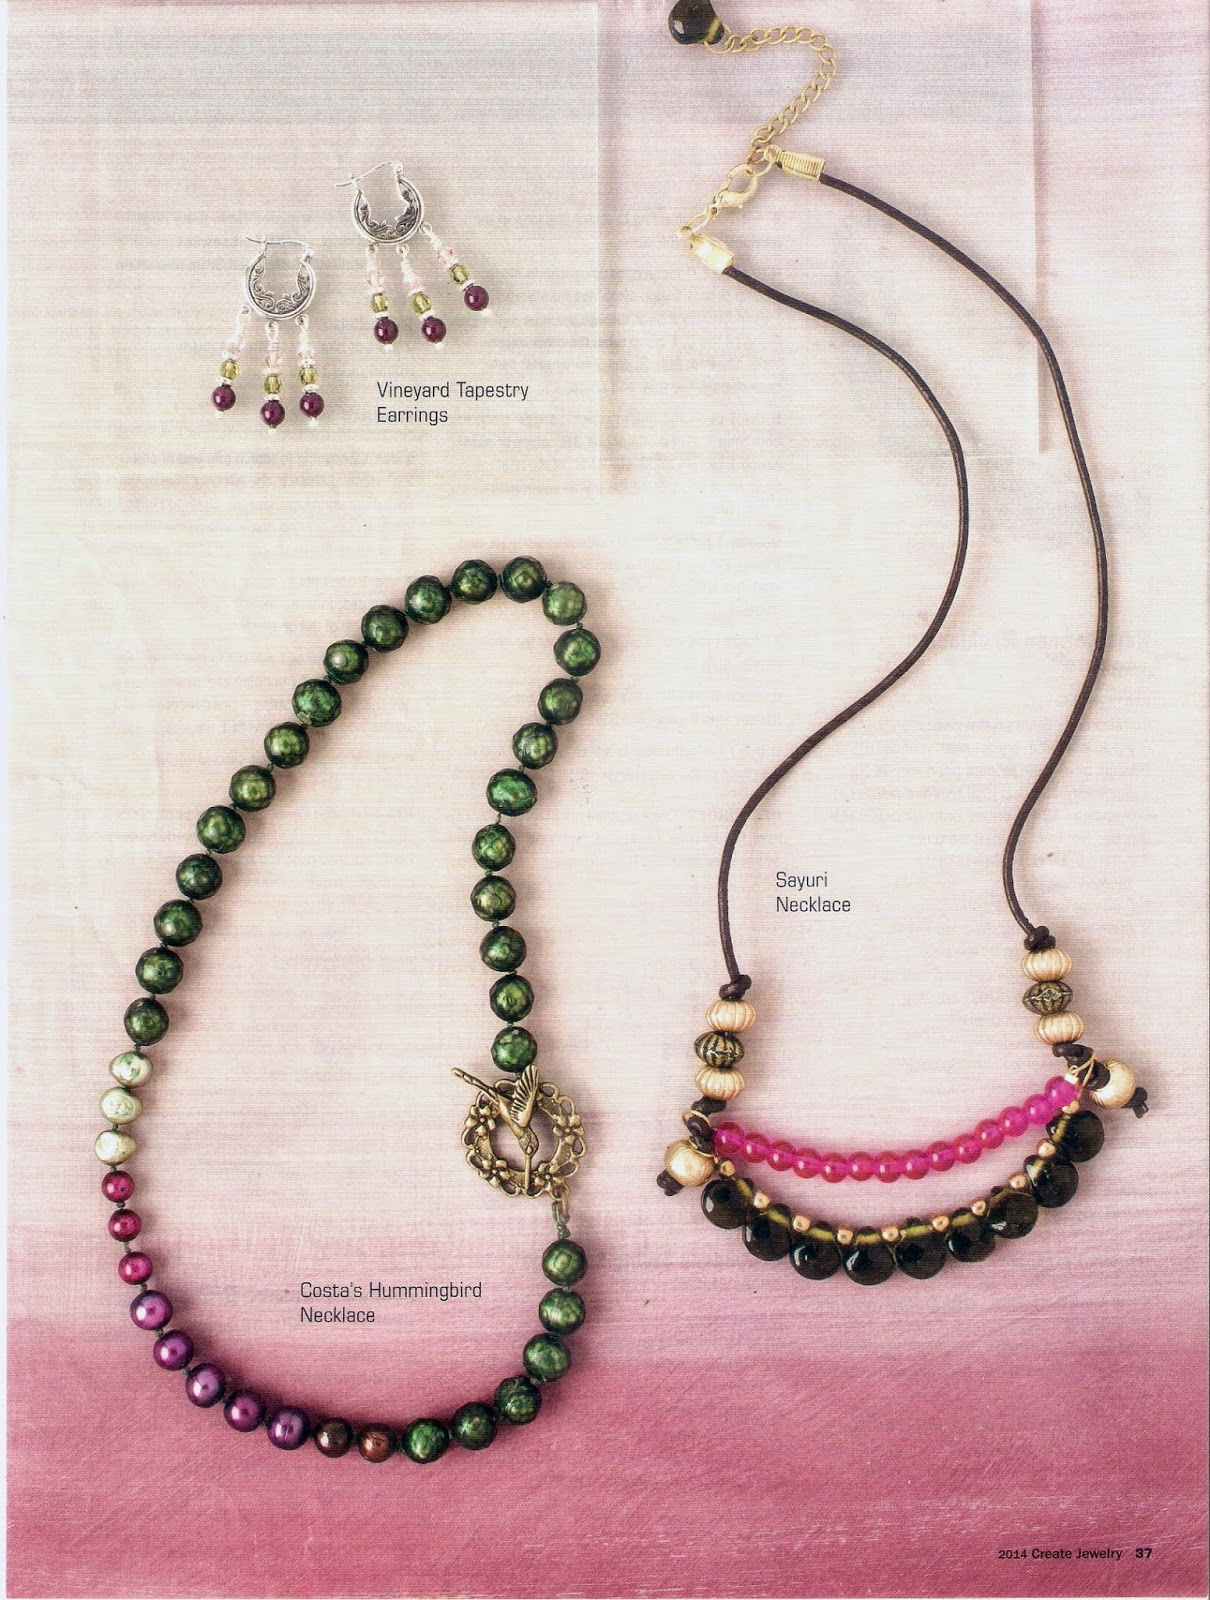 Sayuri Necklace, feathers in flight, create jewelry magazine